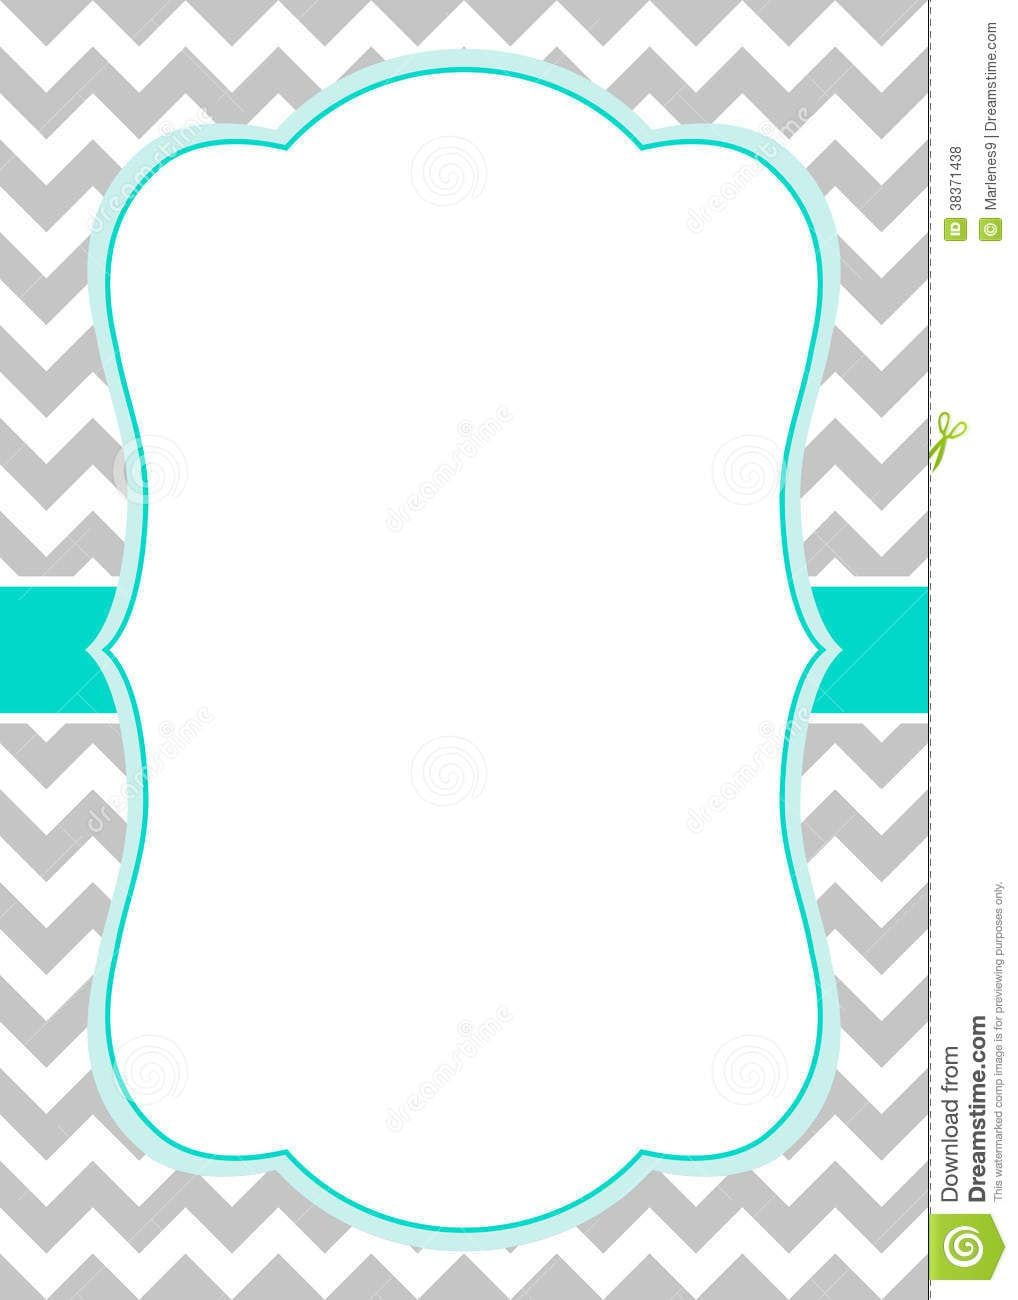 Blank Party Invitations Blank Party Invitations For Simple